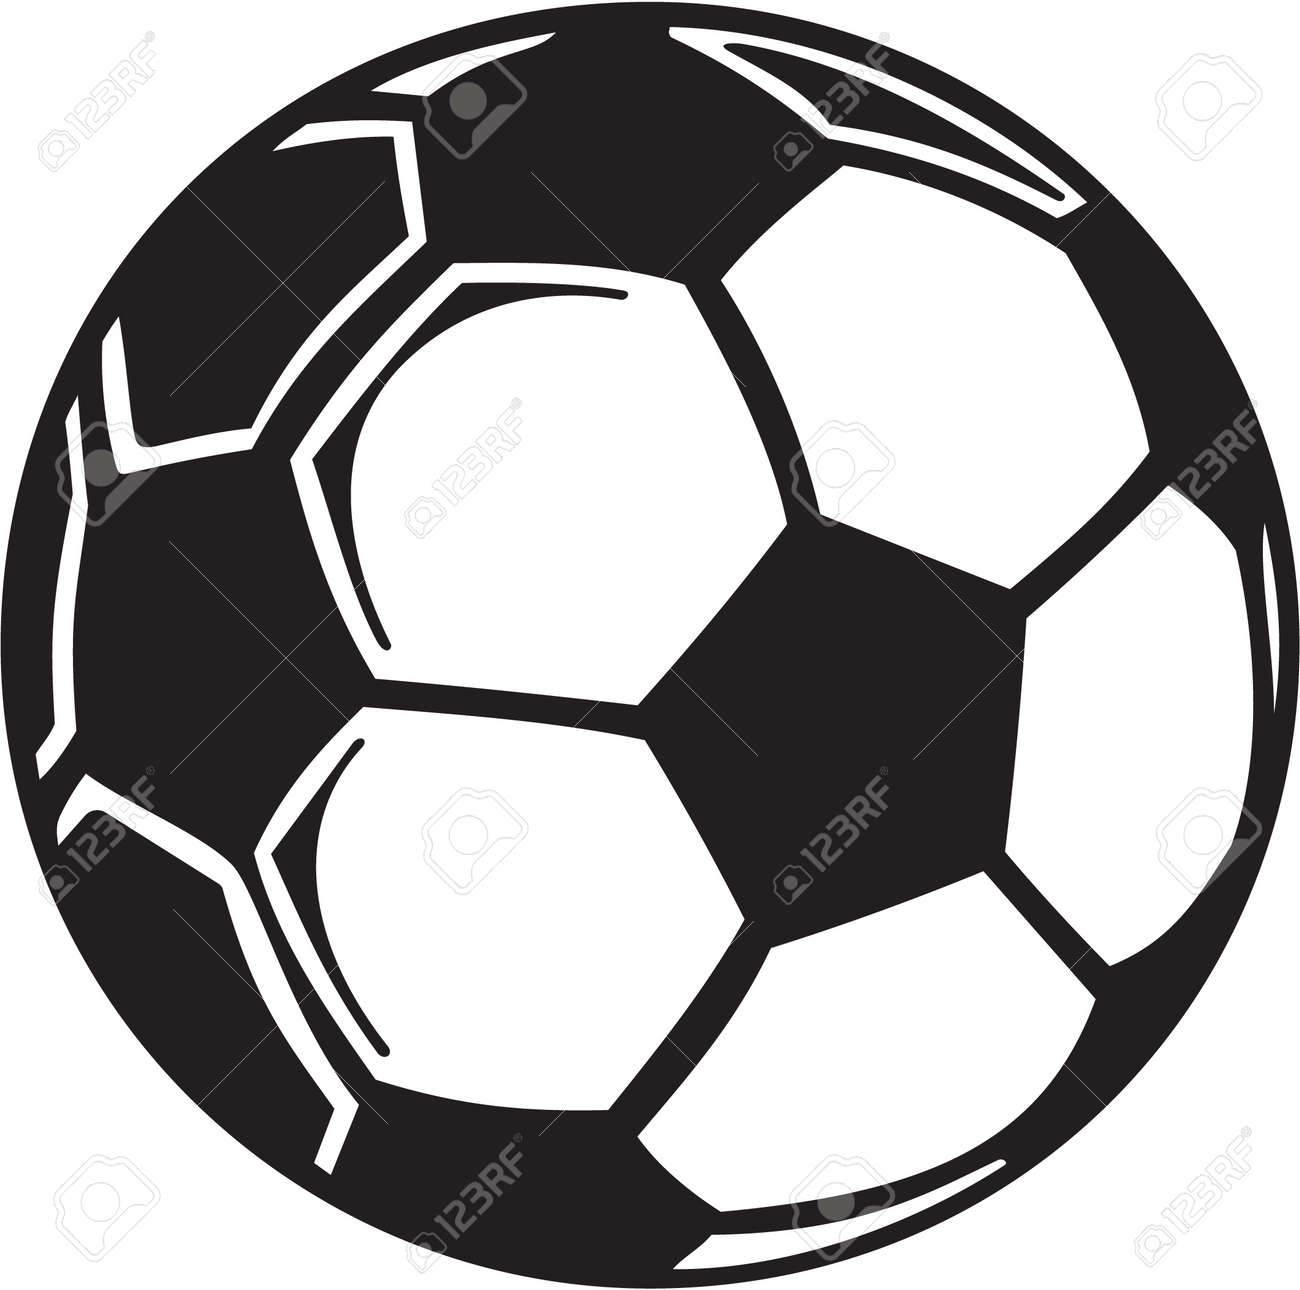 soccer ball vinyl ready royalty free cliparts vectors and stock rh 123rf com